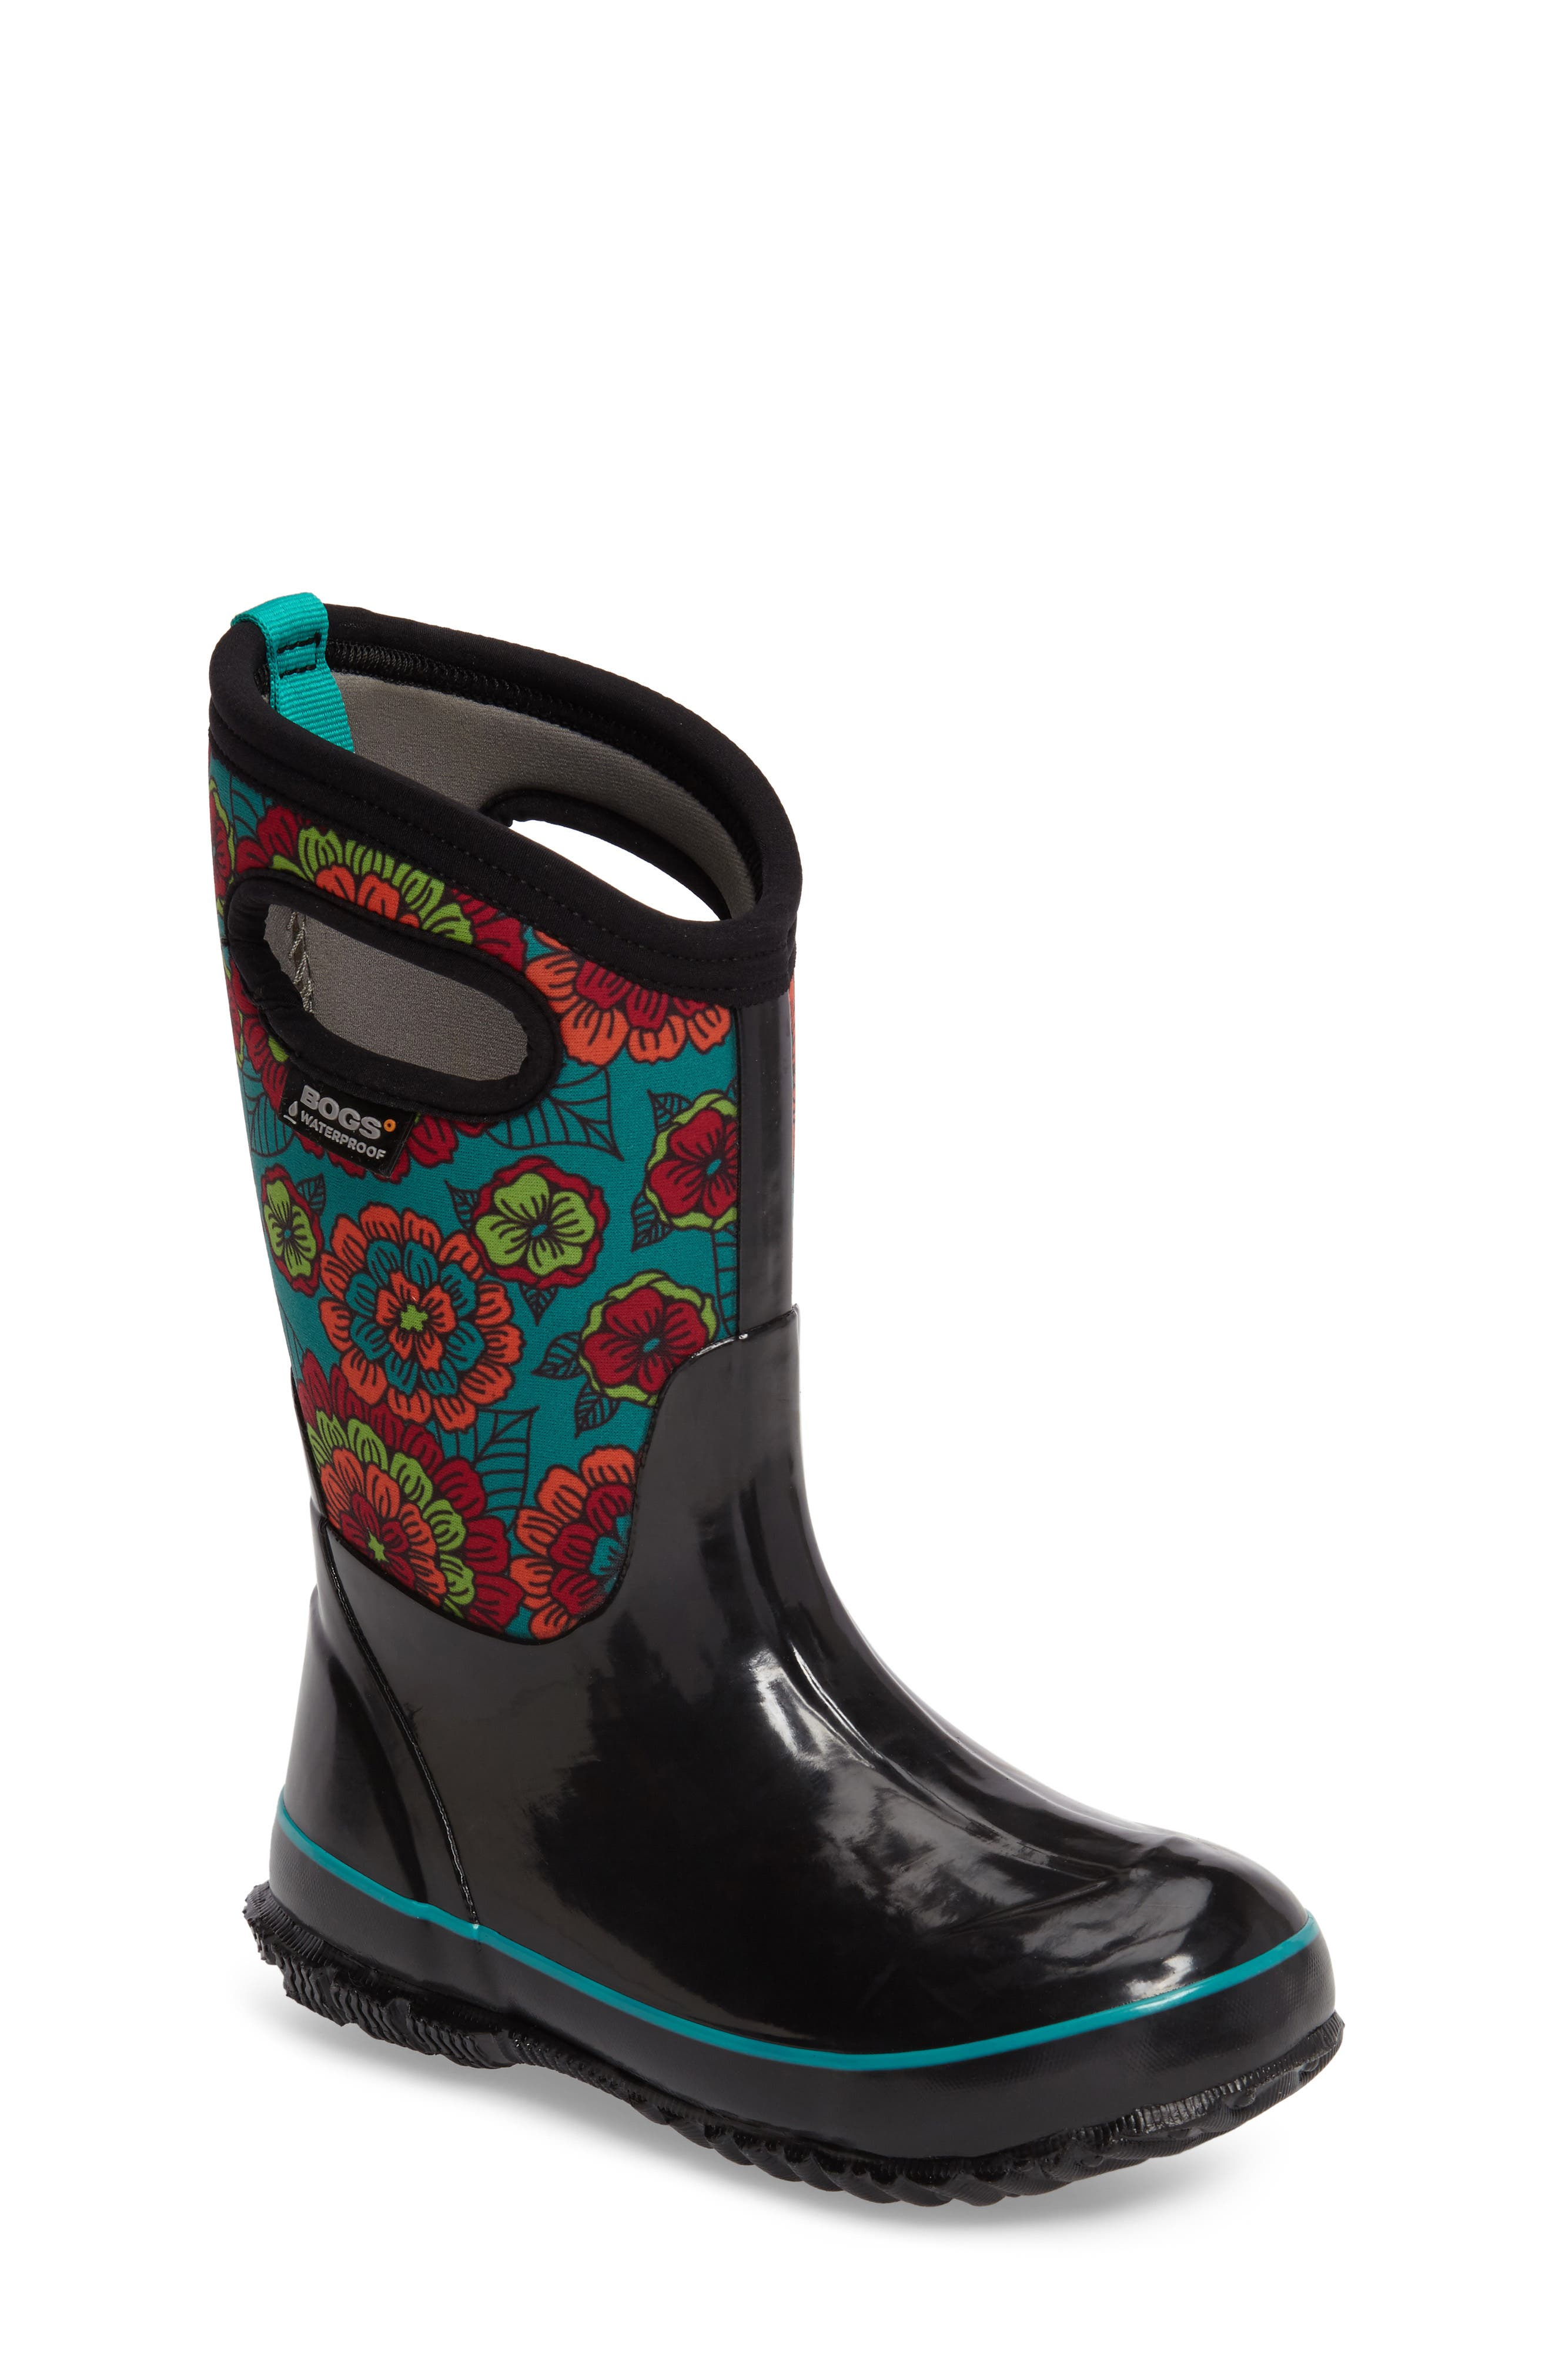 BOGS, Classic Pansies Insulated Waterproof Rain Boot, Main thumbnail 1, color, 005